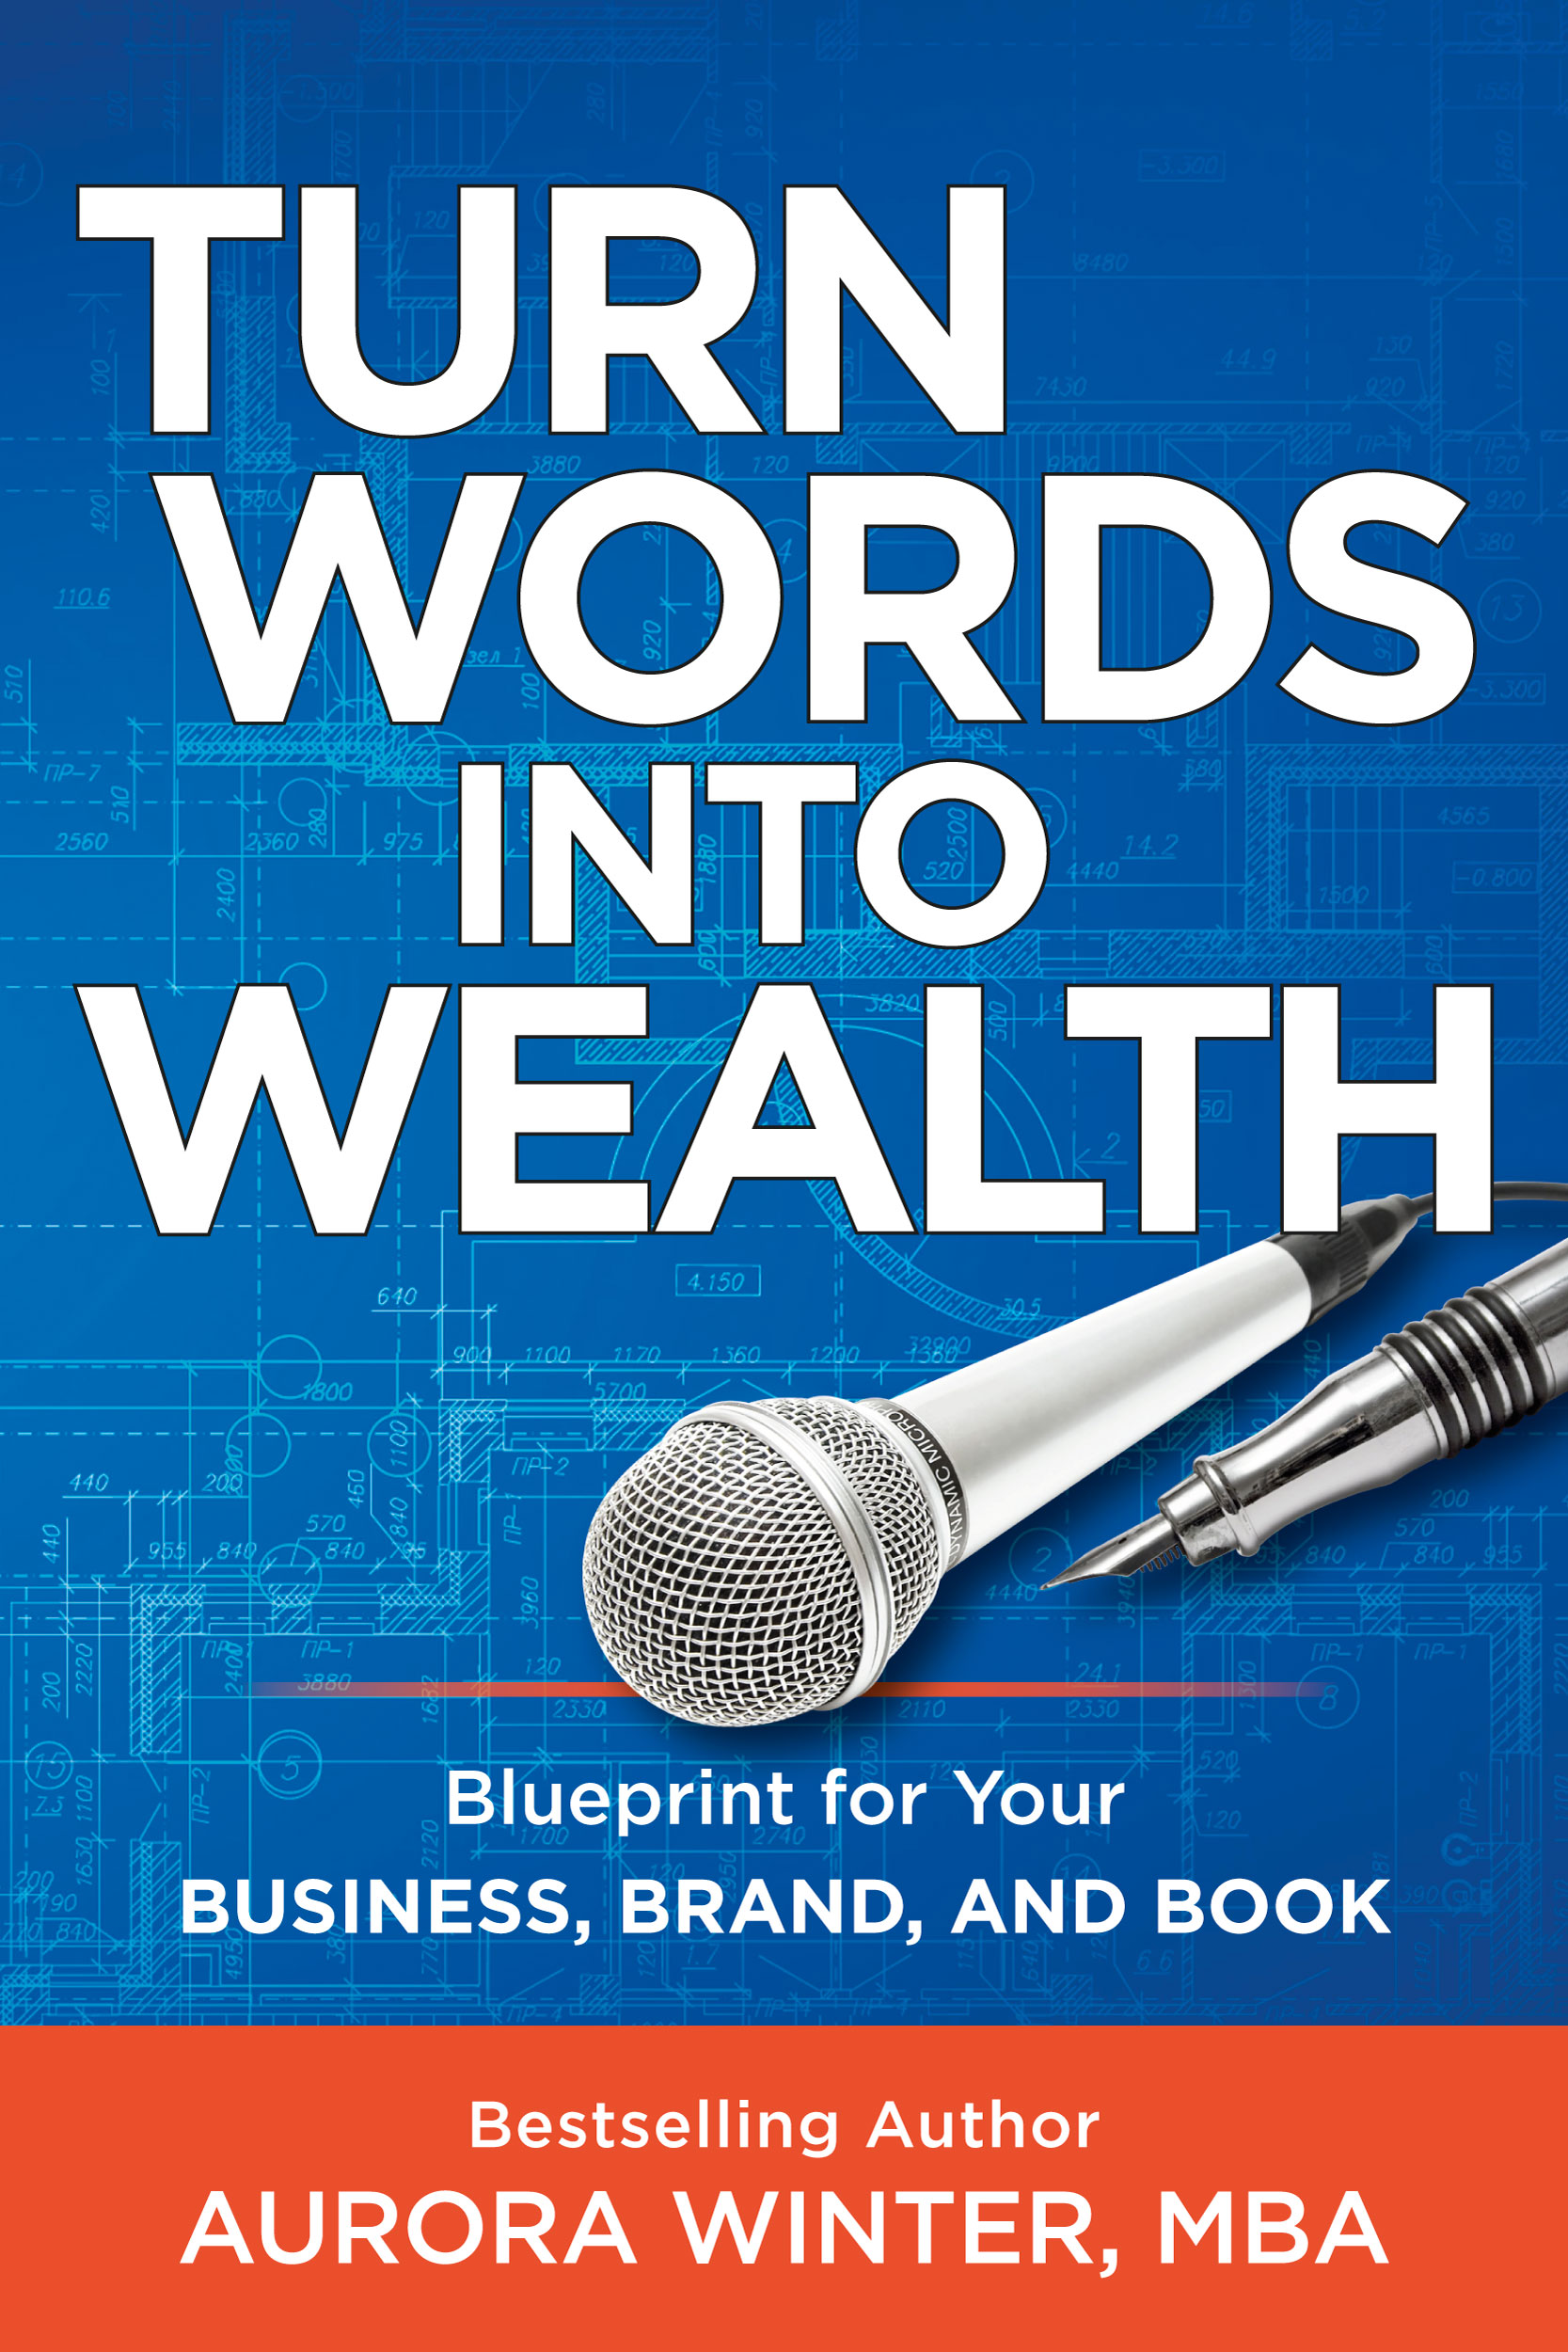 Turn Words Into Wealth: Blueprint for Your Business, Brand, and Book